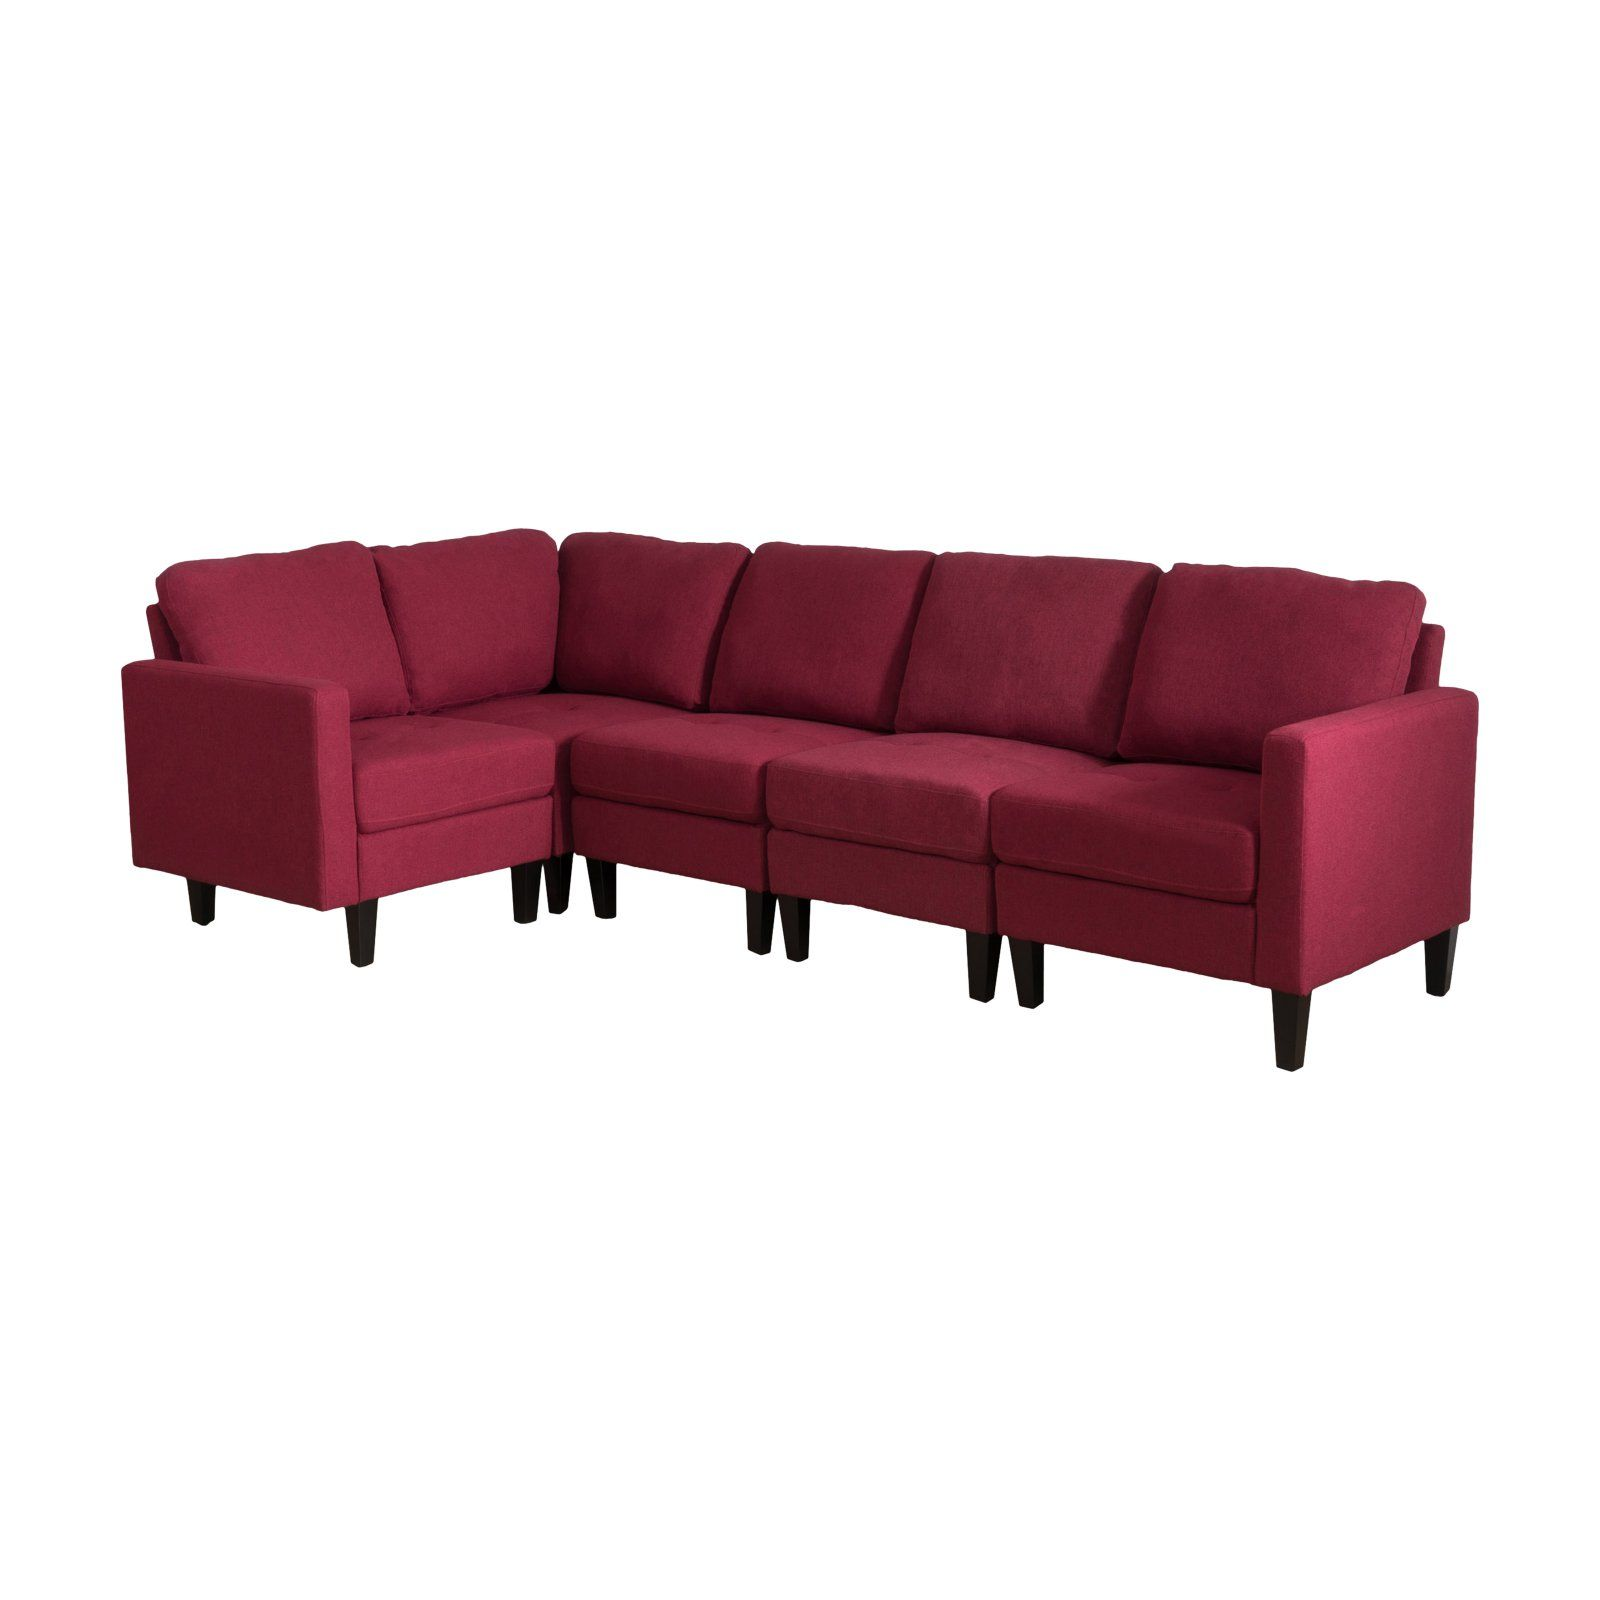 Zahra Tufted Sectional Sofa Deep Red Fabric Sectional Couch Sectional Sofa Sectional Couch